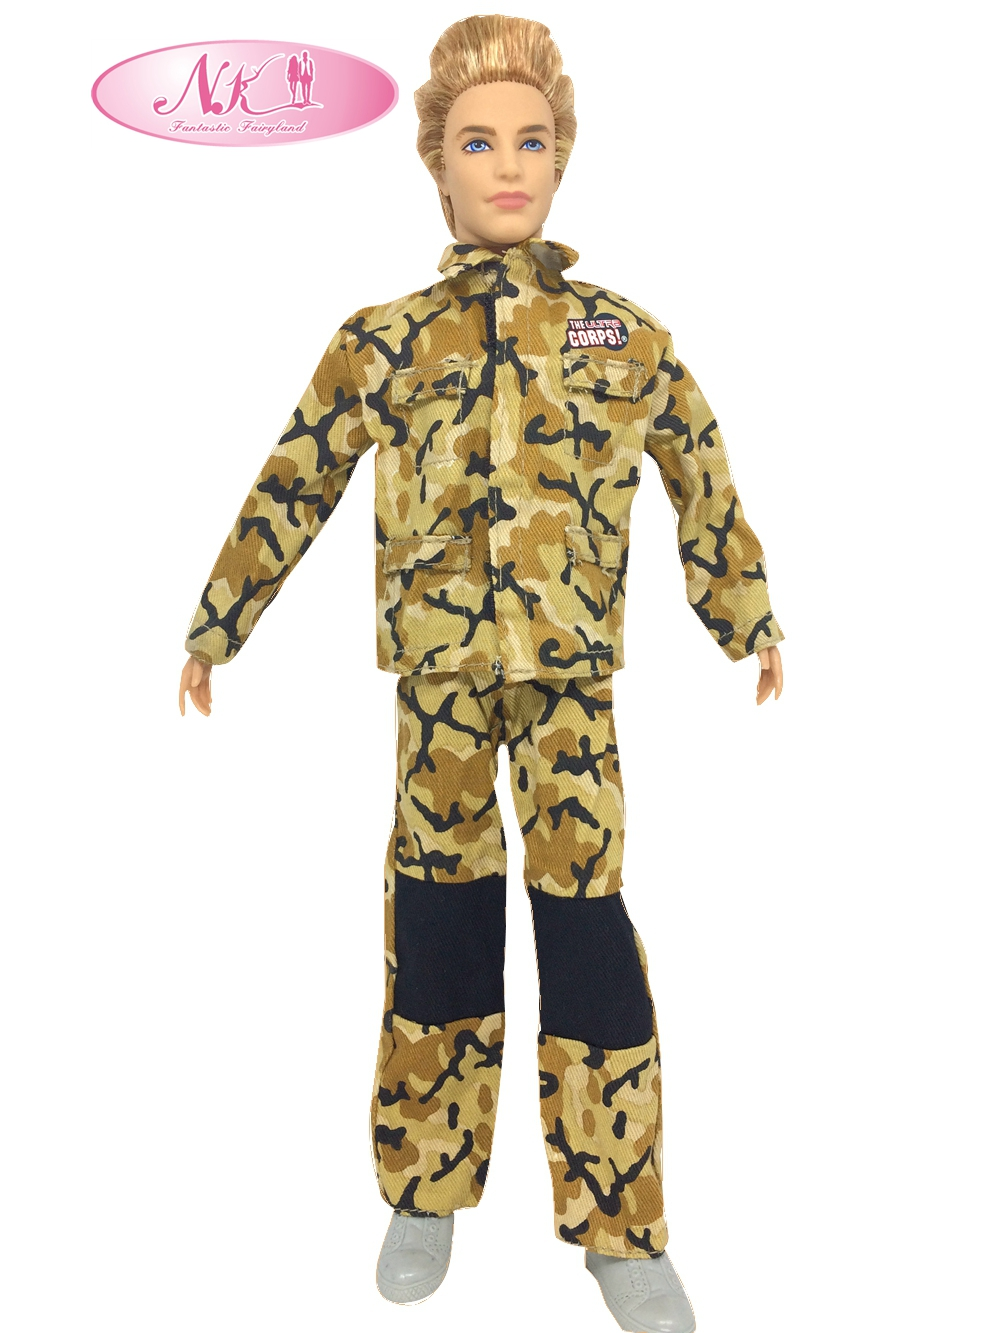 NK Unique Doll Prince Garments Marines Fight Uniform Outfit For Barbie Boy Male  Ken Doll For Lanard  1/6 Soldier  Greatest Present